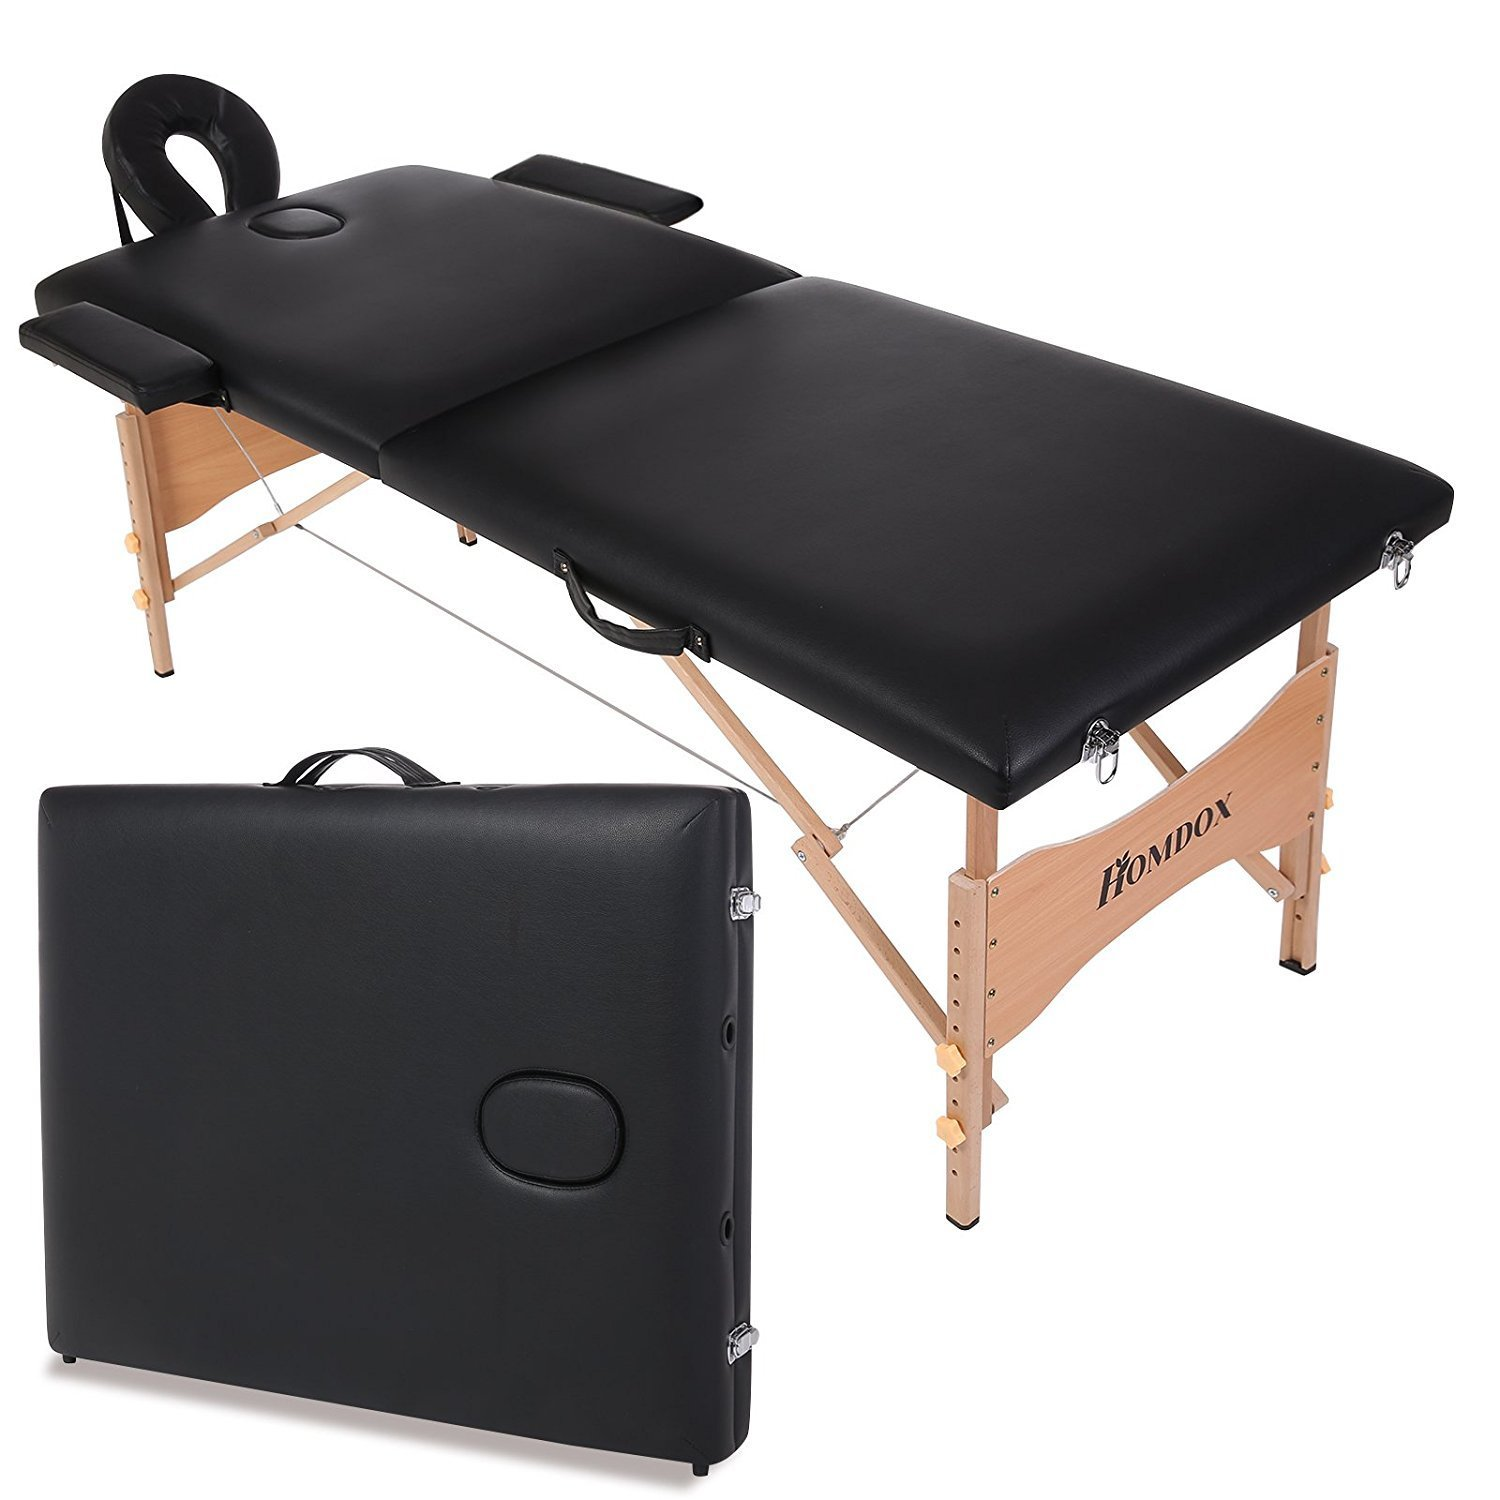 Homevol Portable Massage Table,Two-fold and Wooden Feet w/Free Carry Case,blackPortable Massage Table,Two-fold and Wooden Feet w/Free Carry Case,black